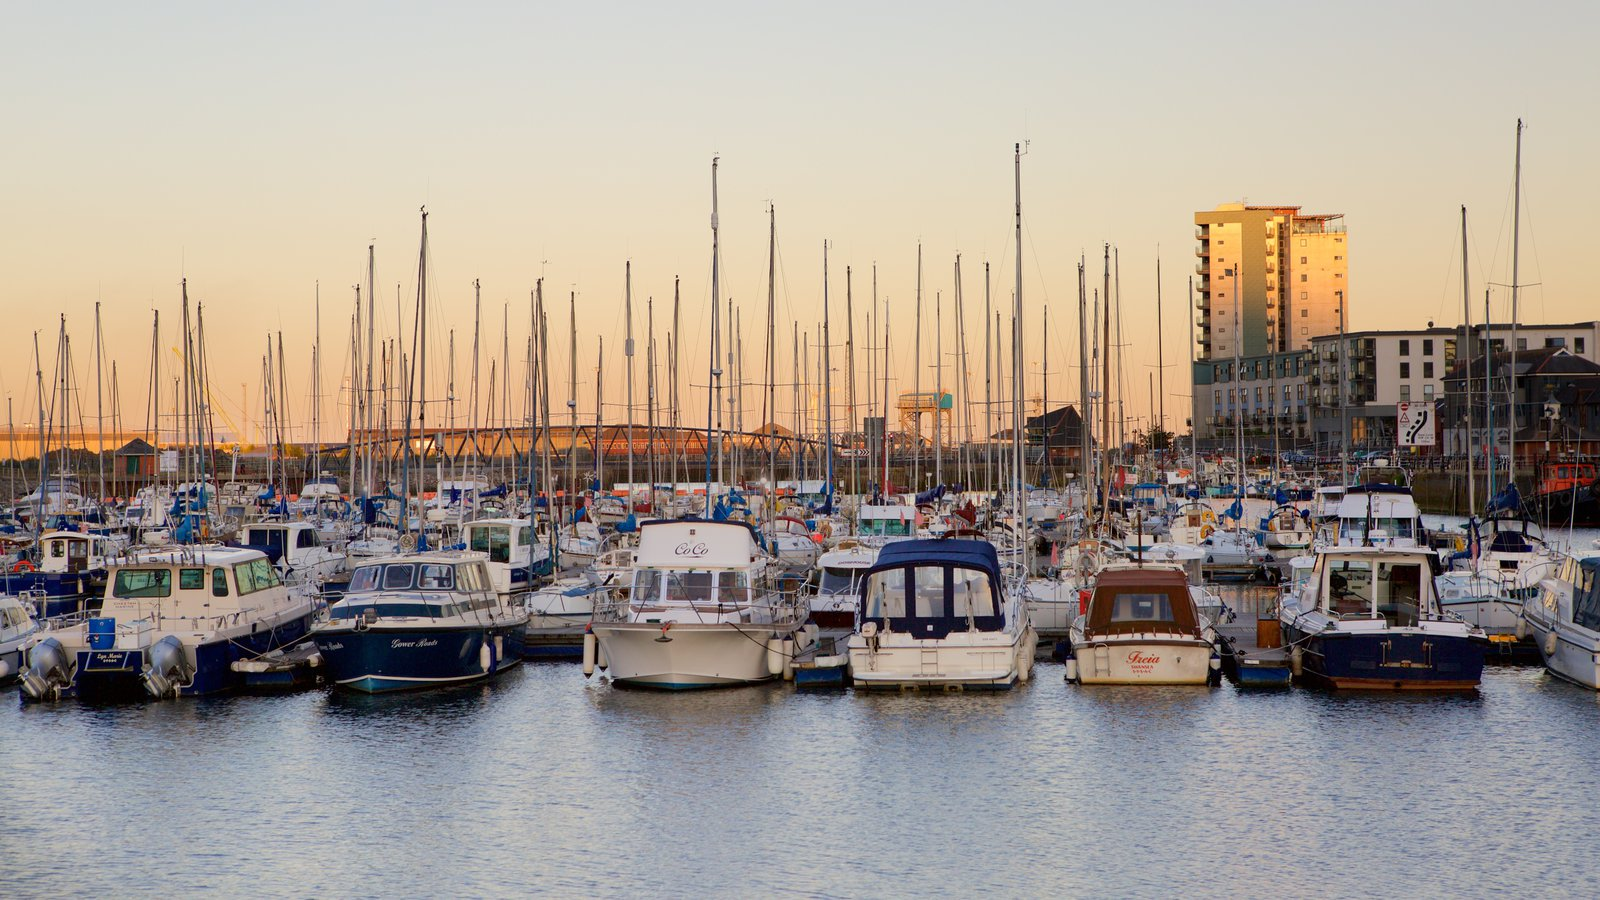 Swansea featuring a marina, general coastal views and a sunset